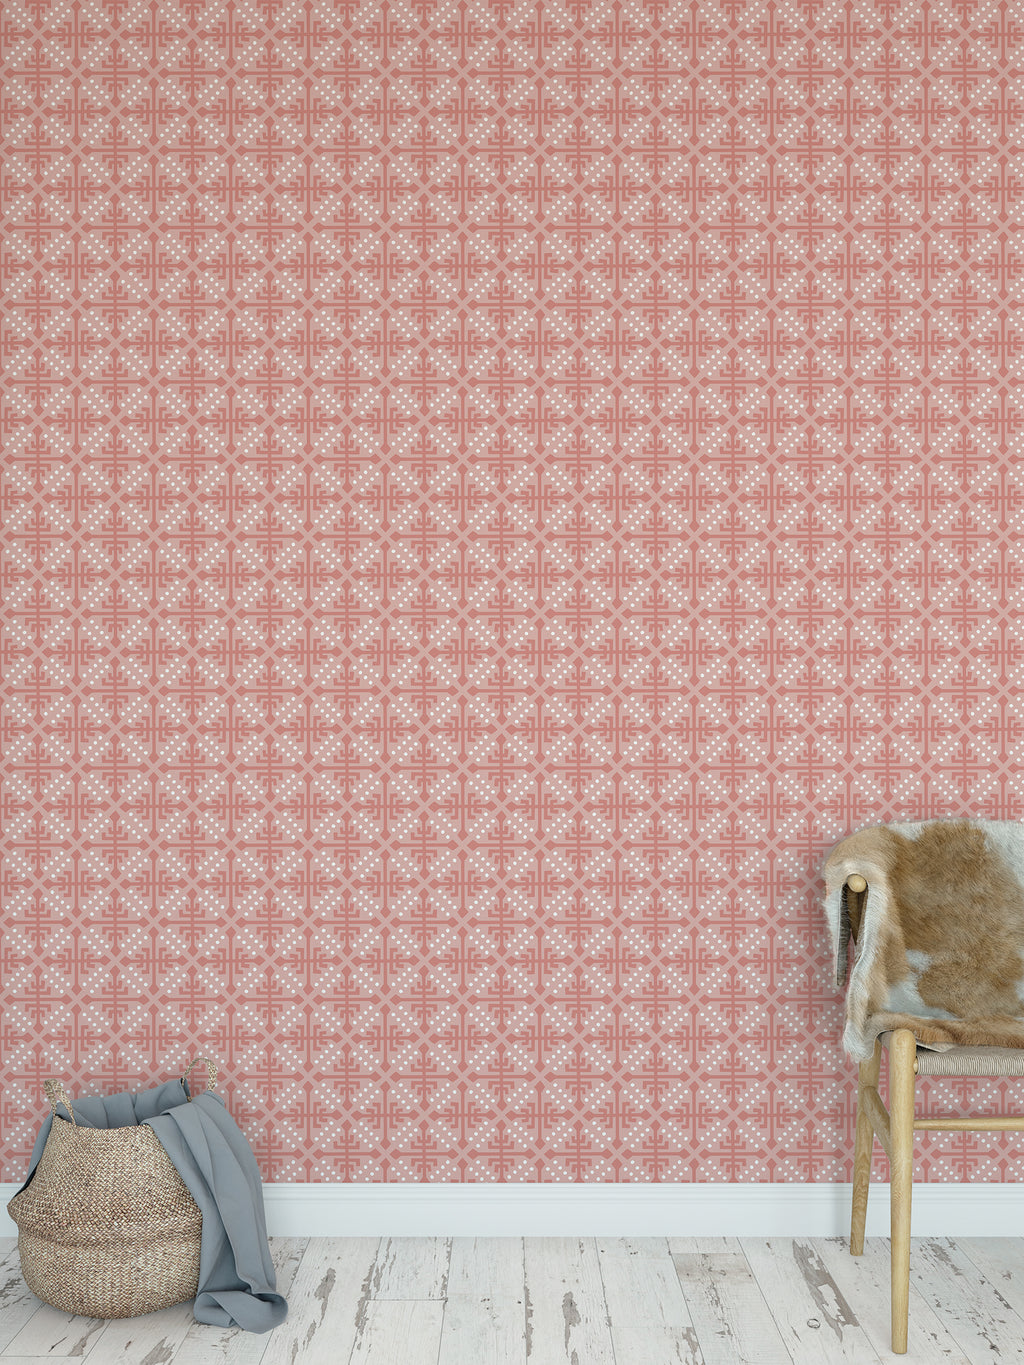 WONDER CORAL Peel and Stick Wallpaper By Tiffany Wong